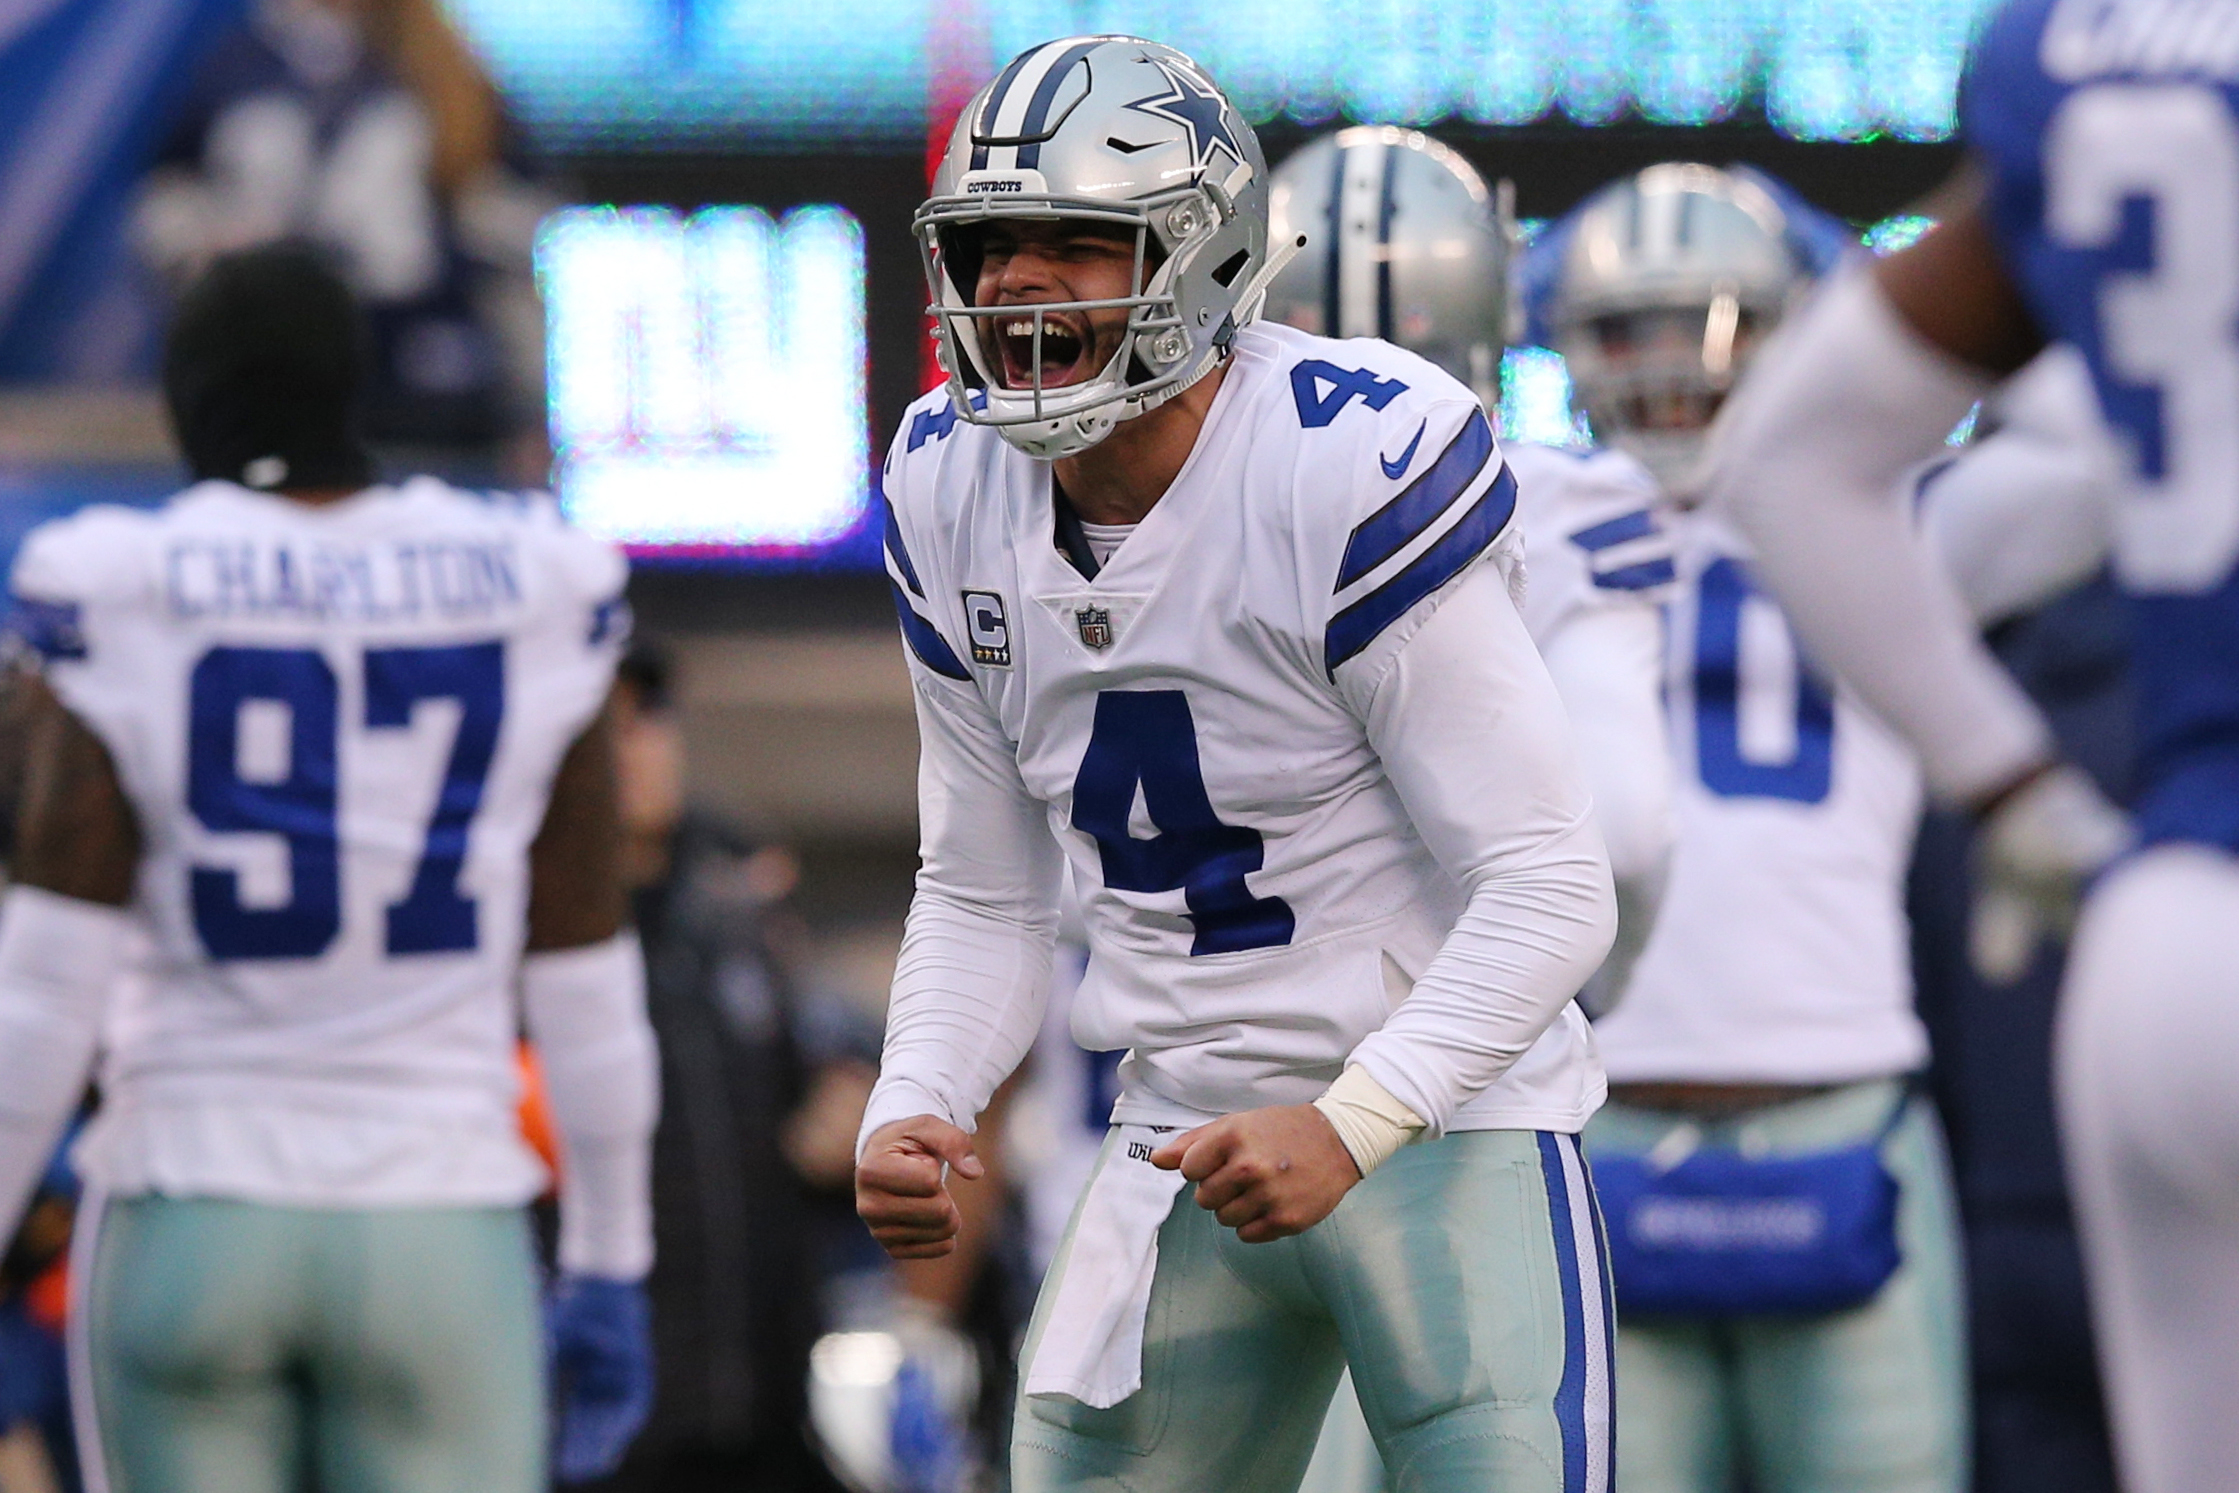 Dec 30, 2018; East Rutherford, NJ, USA; Dallas Cowboys quarterback Dak Prescott (4) reacts after a touchdown against the New York Giants during the third quarter at MetLife Stadium. Mandatory Credit: Brad Penner-USA TODAY Sports